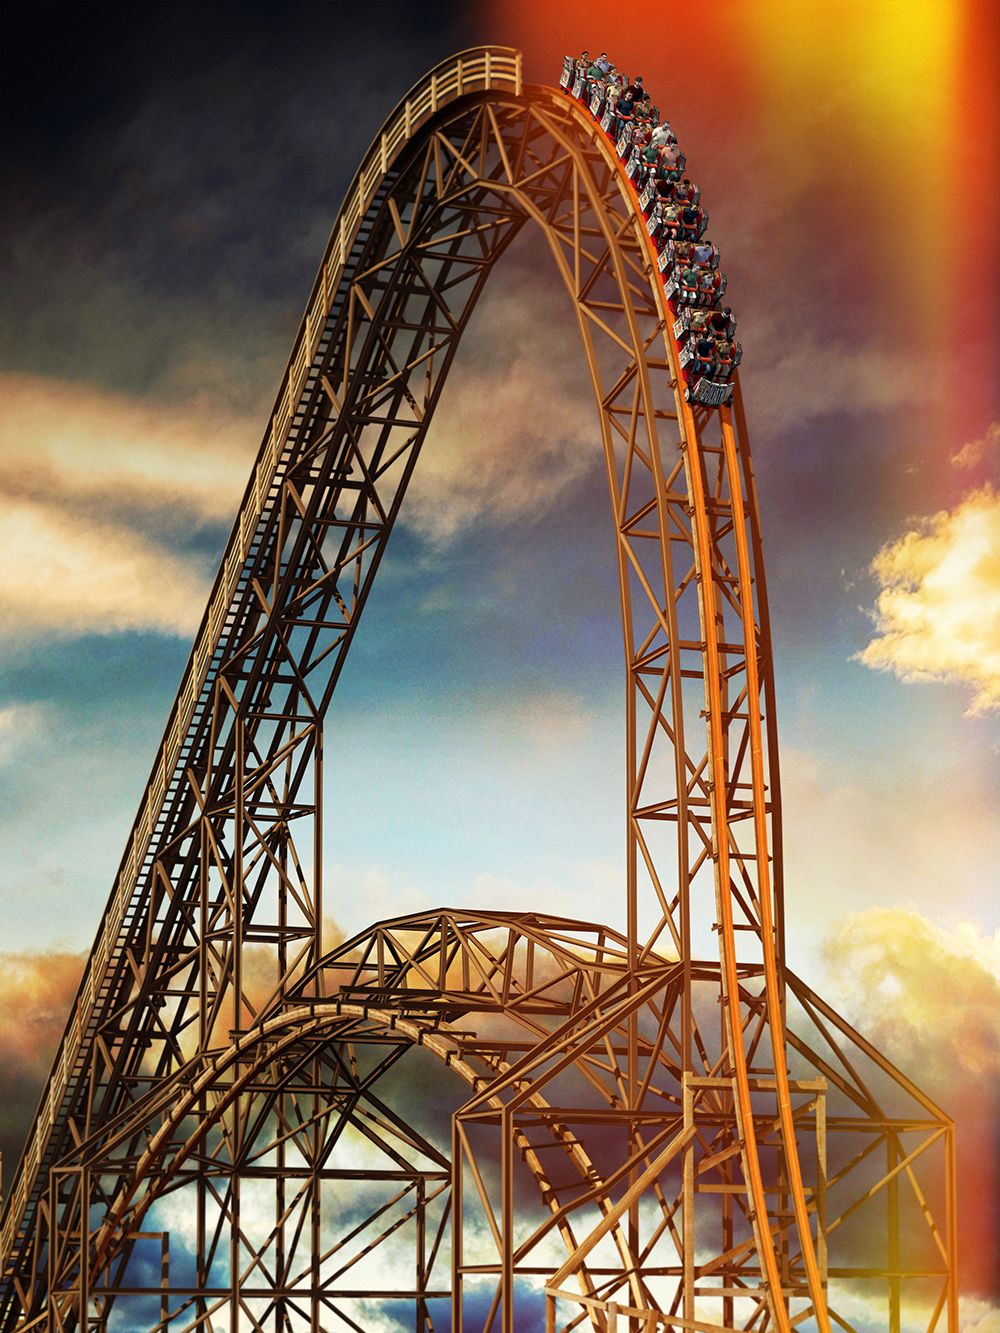 5 New Record-Breaking Rides That Will Terrify You This Summer ...